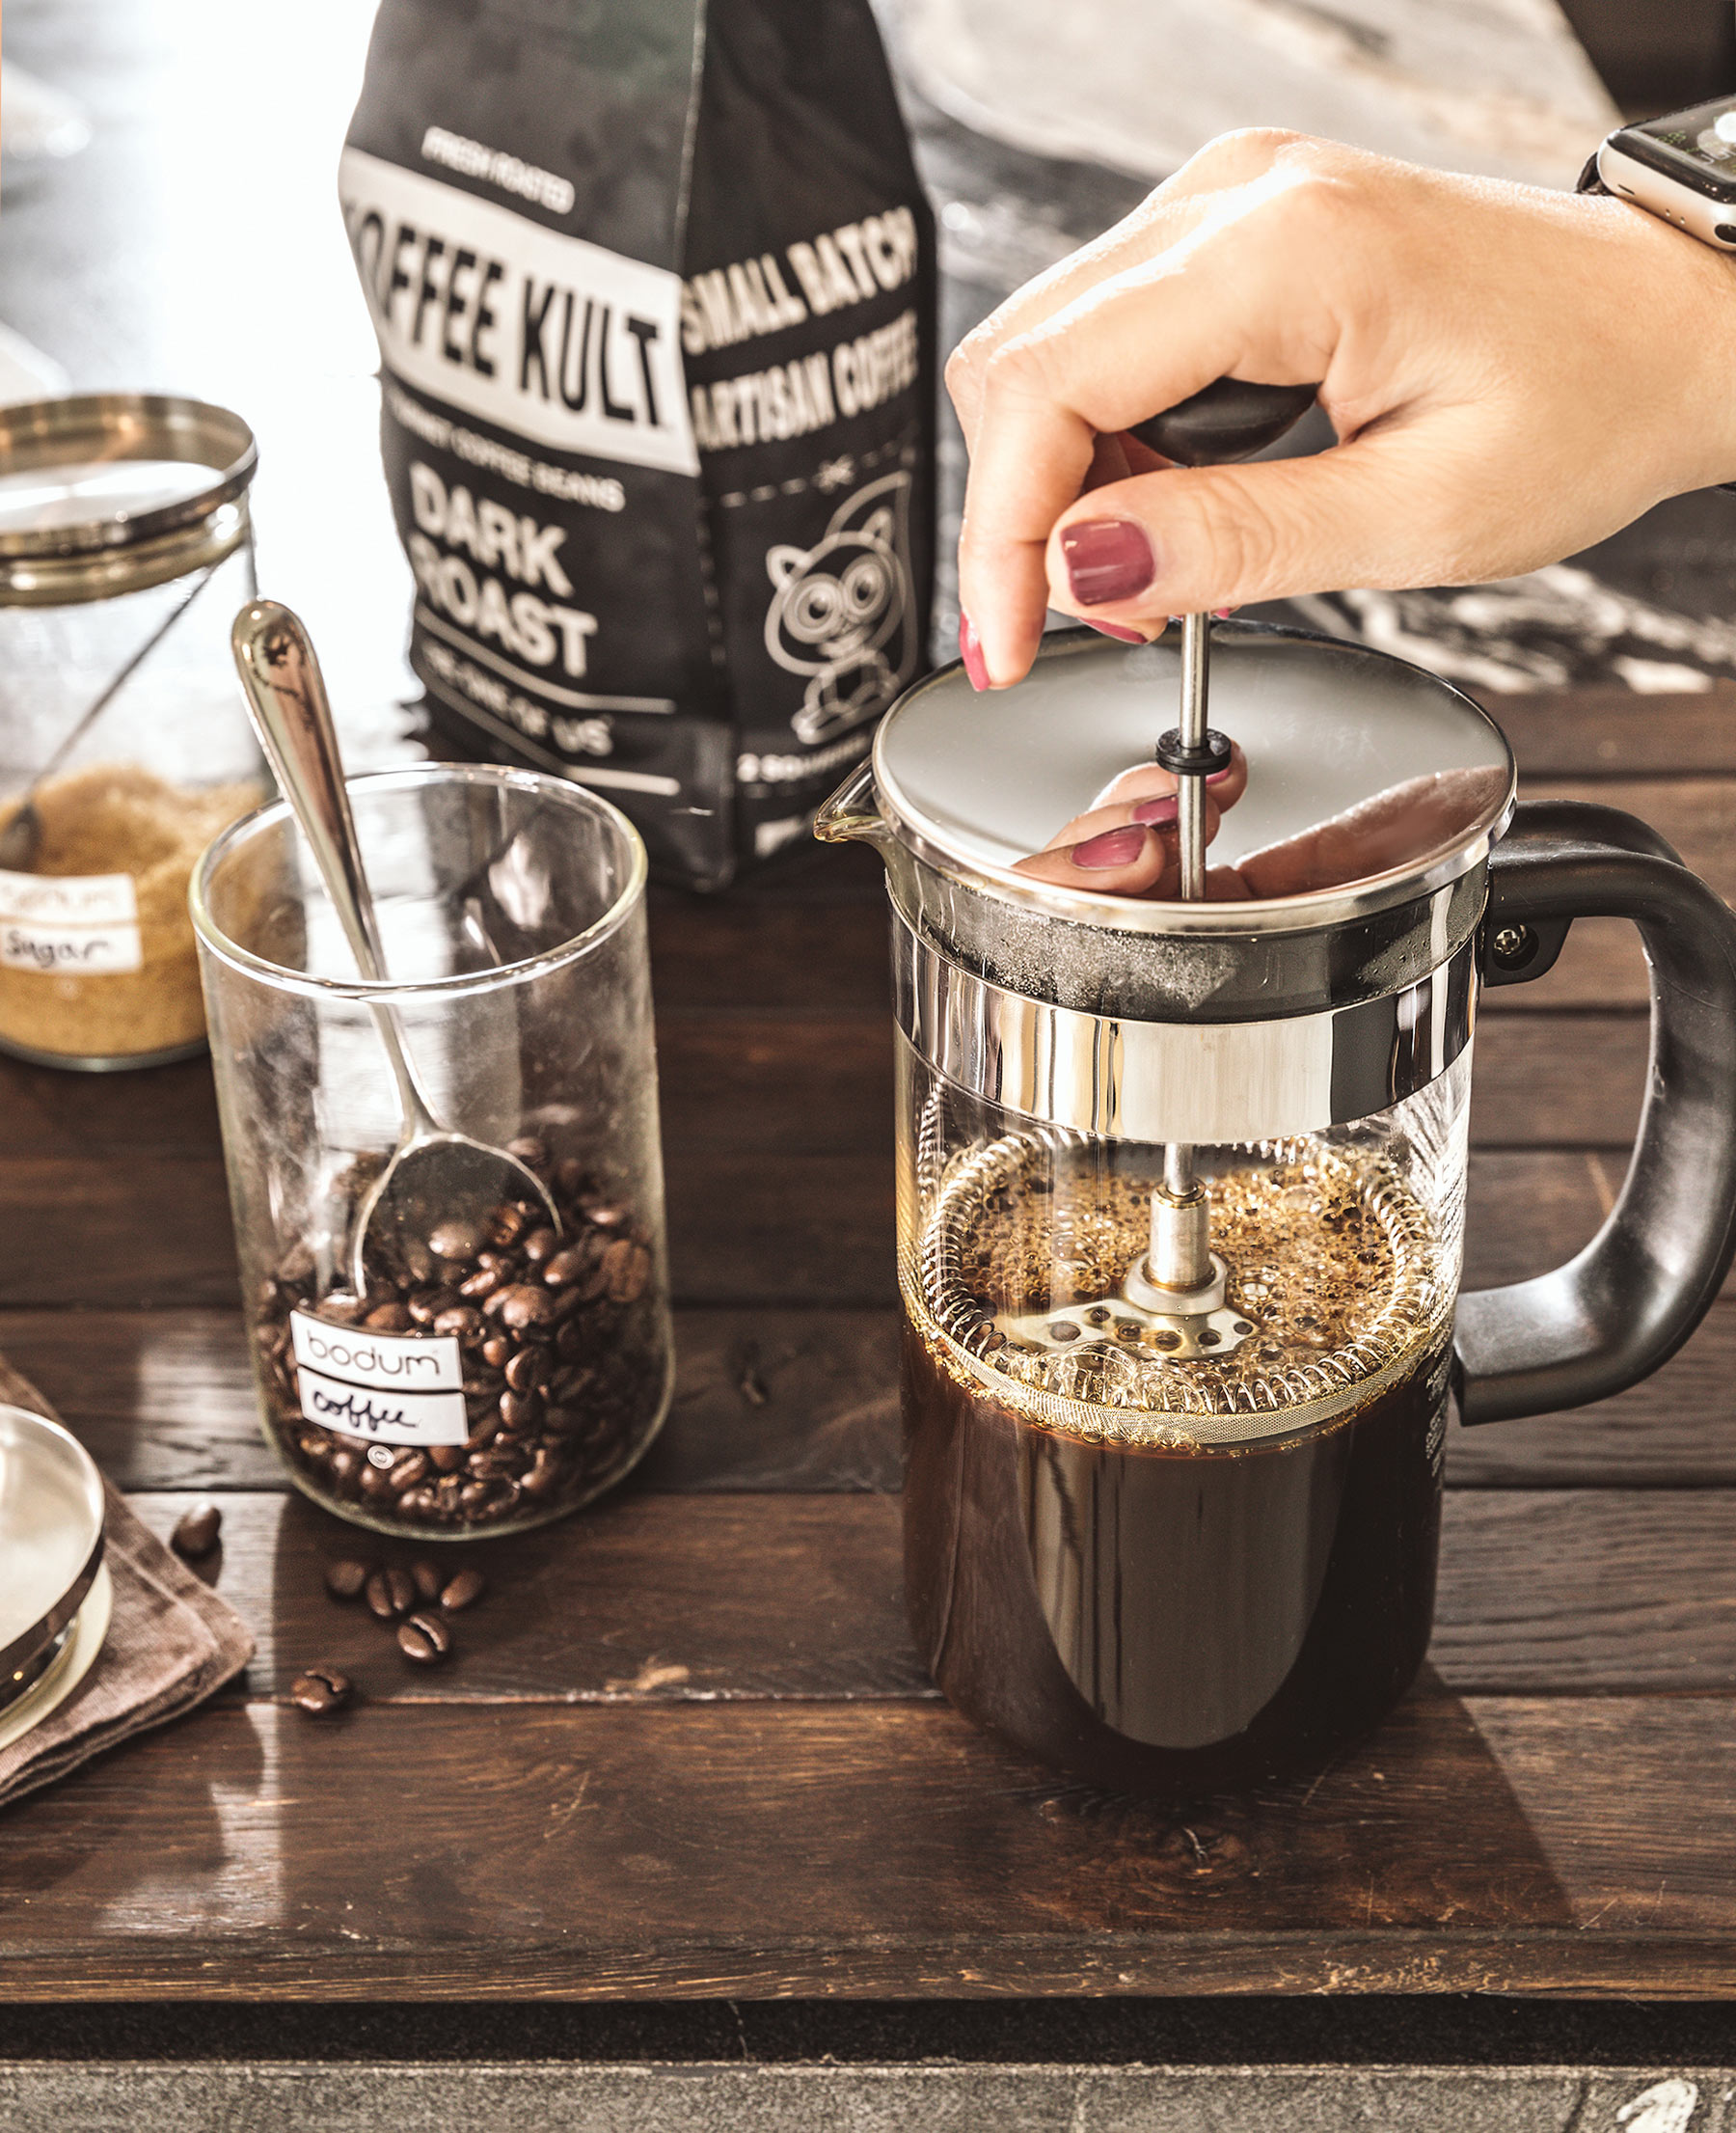 Bodum Coffee press with Kofee Kult beans and sugar in the raw